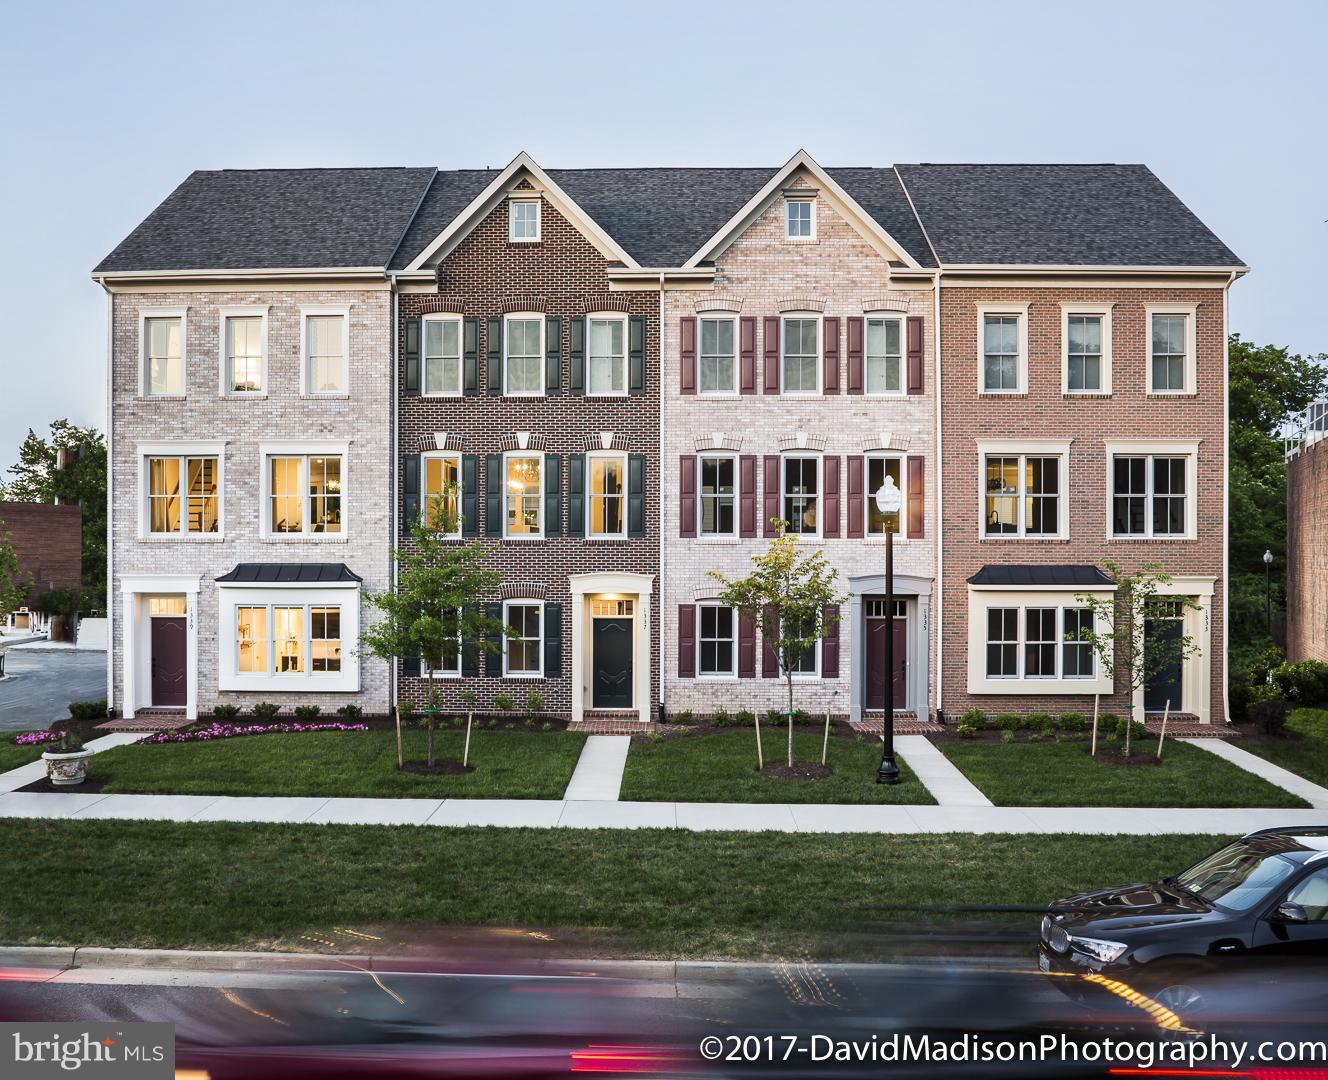 MODEL FOR SALE Enclave of 18, Four Story Luxury Condominium Townhome in Old Town Alexandria. 3 Bedrooms, 3.5 Baths + 2nd Powder Room on Loft/Roof Top Terrace level. Beautiful Kitchen, Alpine white cabinets/generous cabinet storage. Hardwood Flooring throughout Main Level. 9 ft ceilings on all levels, Large 200+ sq ft Terrace! 2 Car Garage + 2 Car Driveway!! Fenced Front Yards!!!